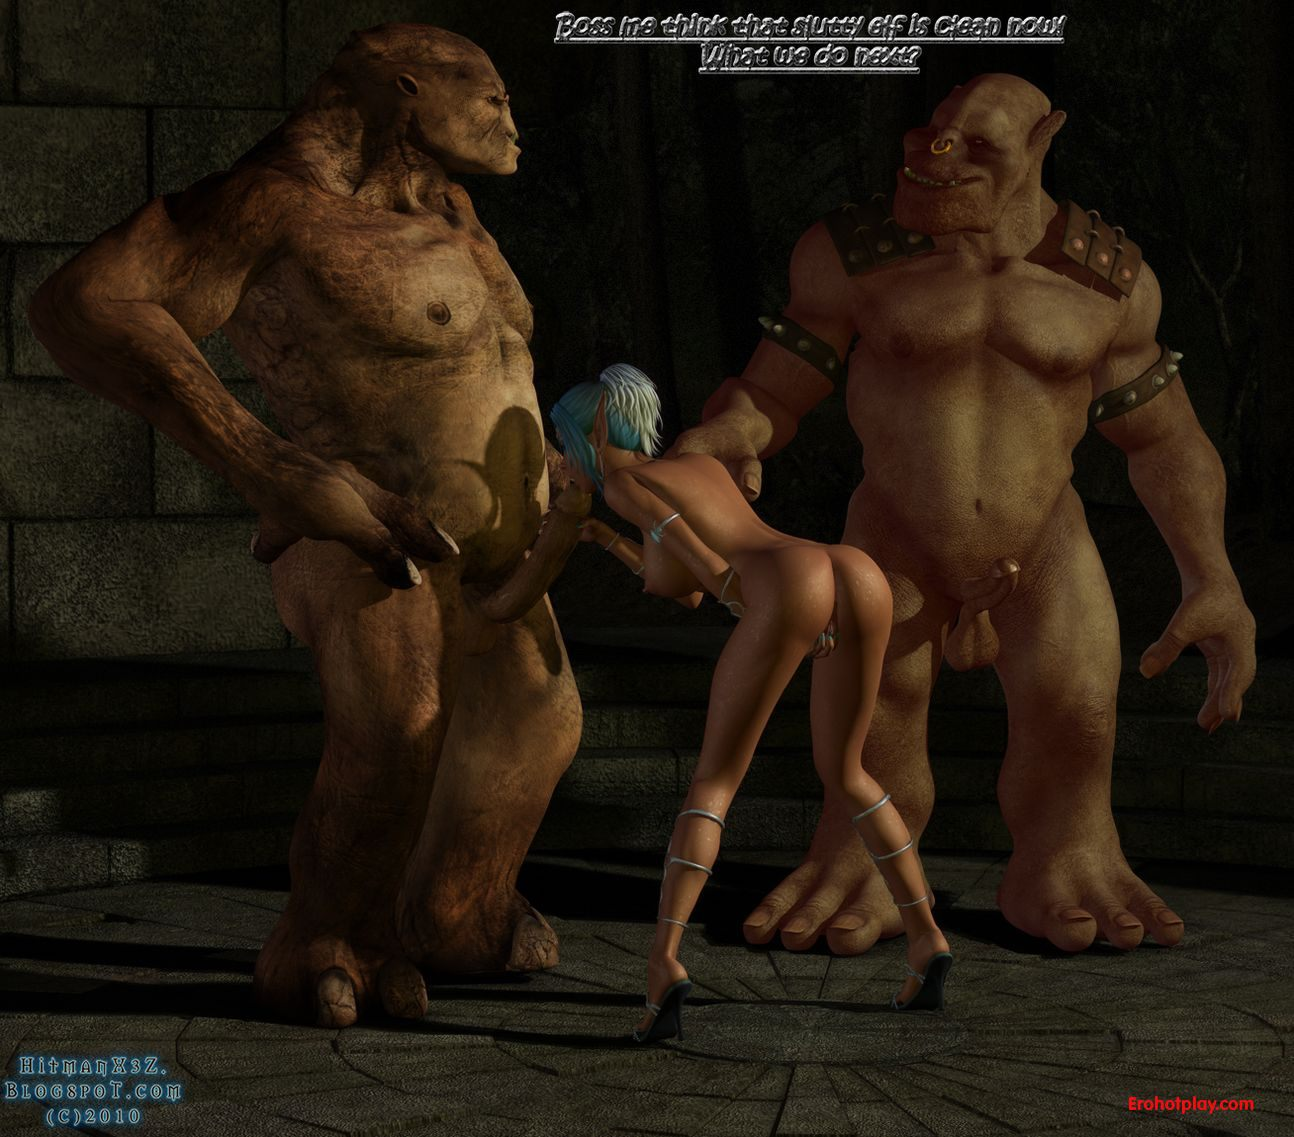 Oblivion monster porn video sex videos